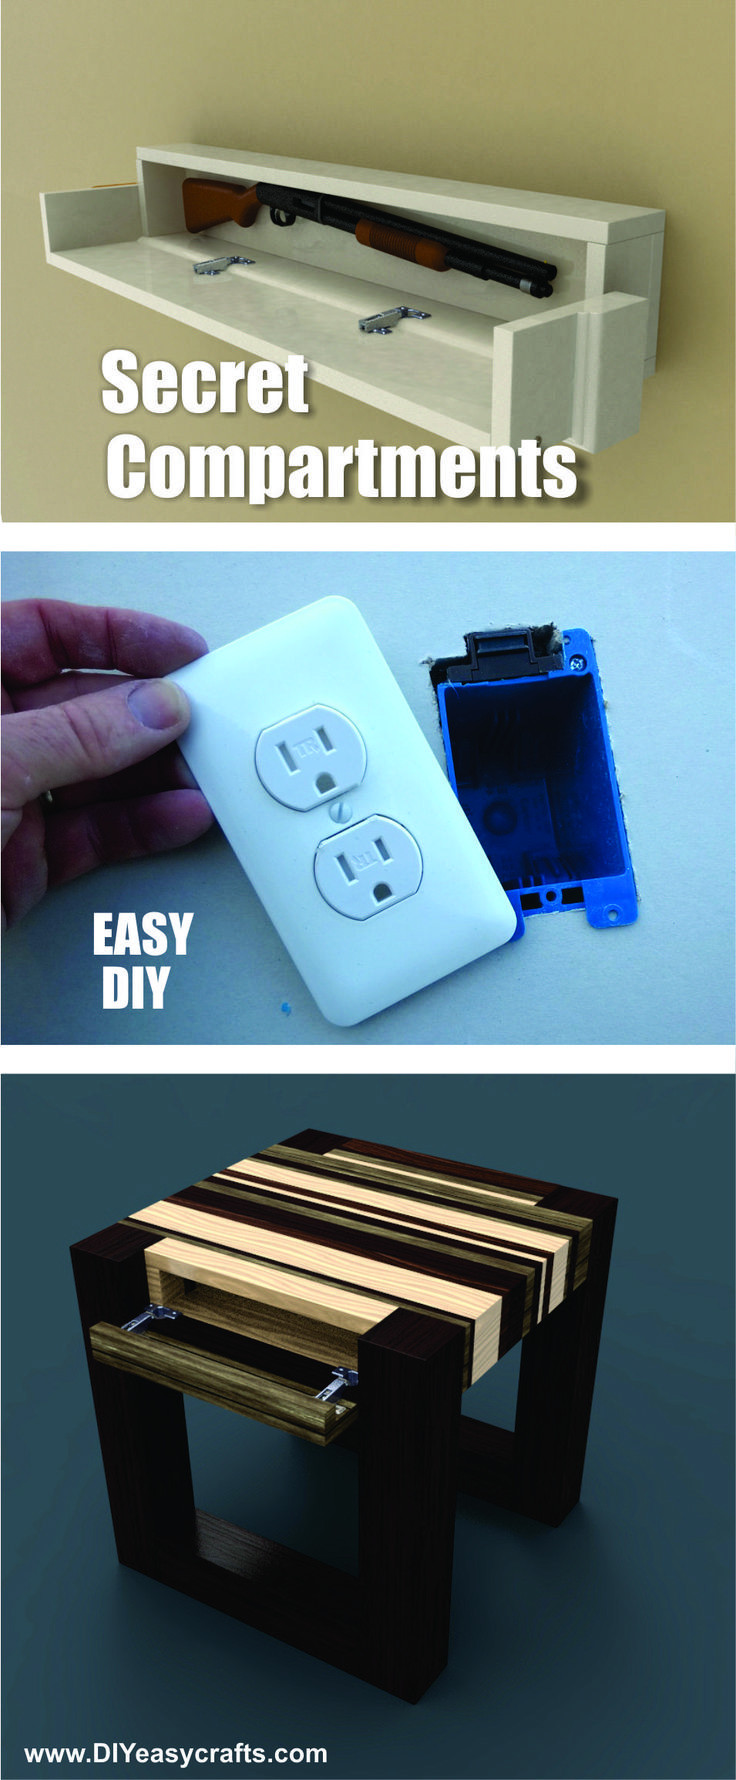 Best ideas about Secret Compartment Furniture DIY . Save or Pin 1000 ideas about Hidden partments on Pinterest Now.